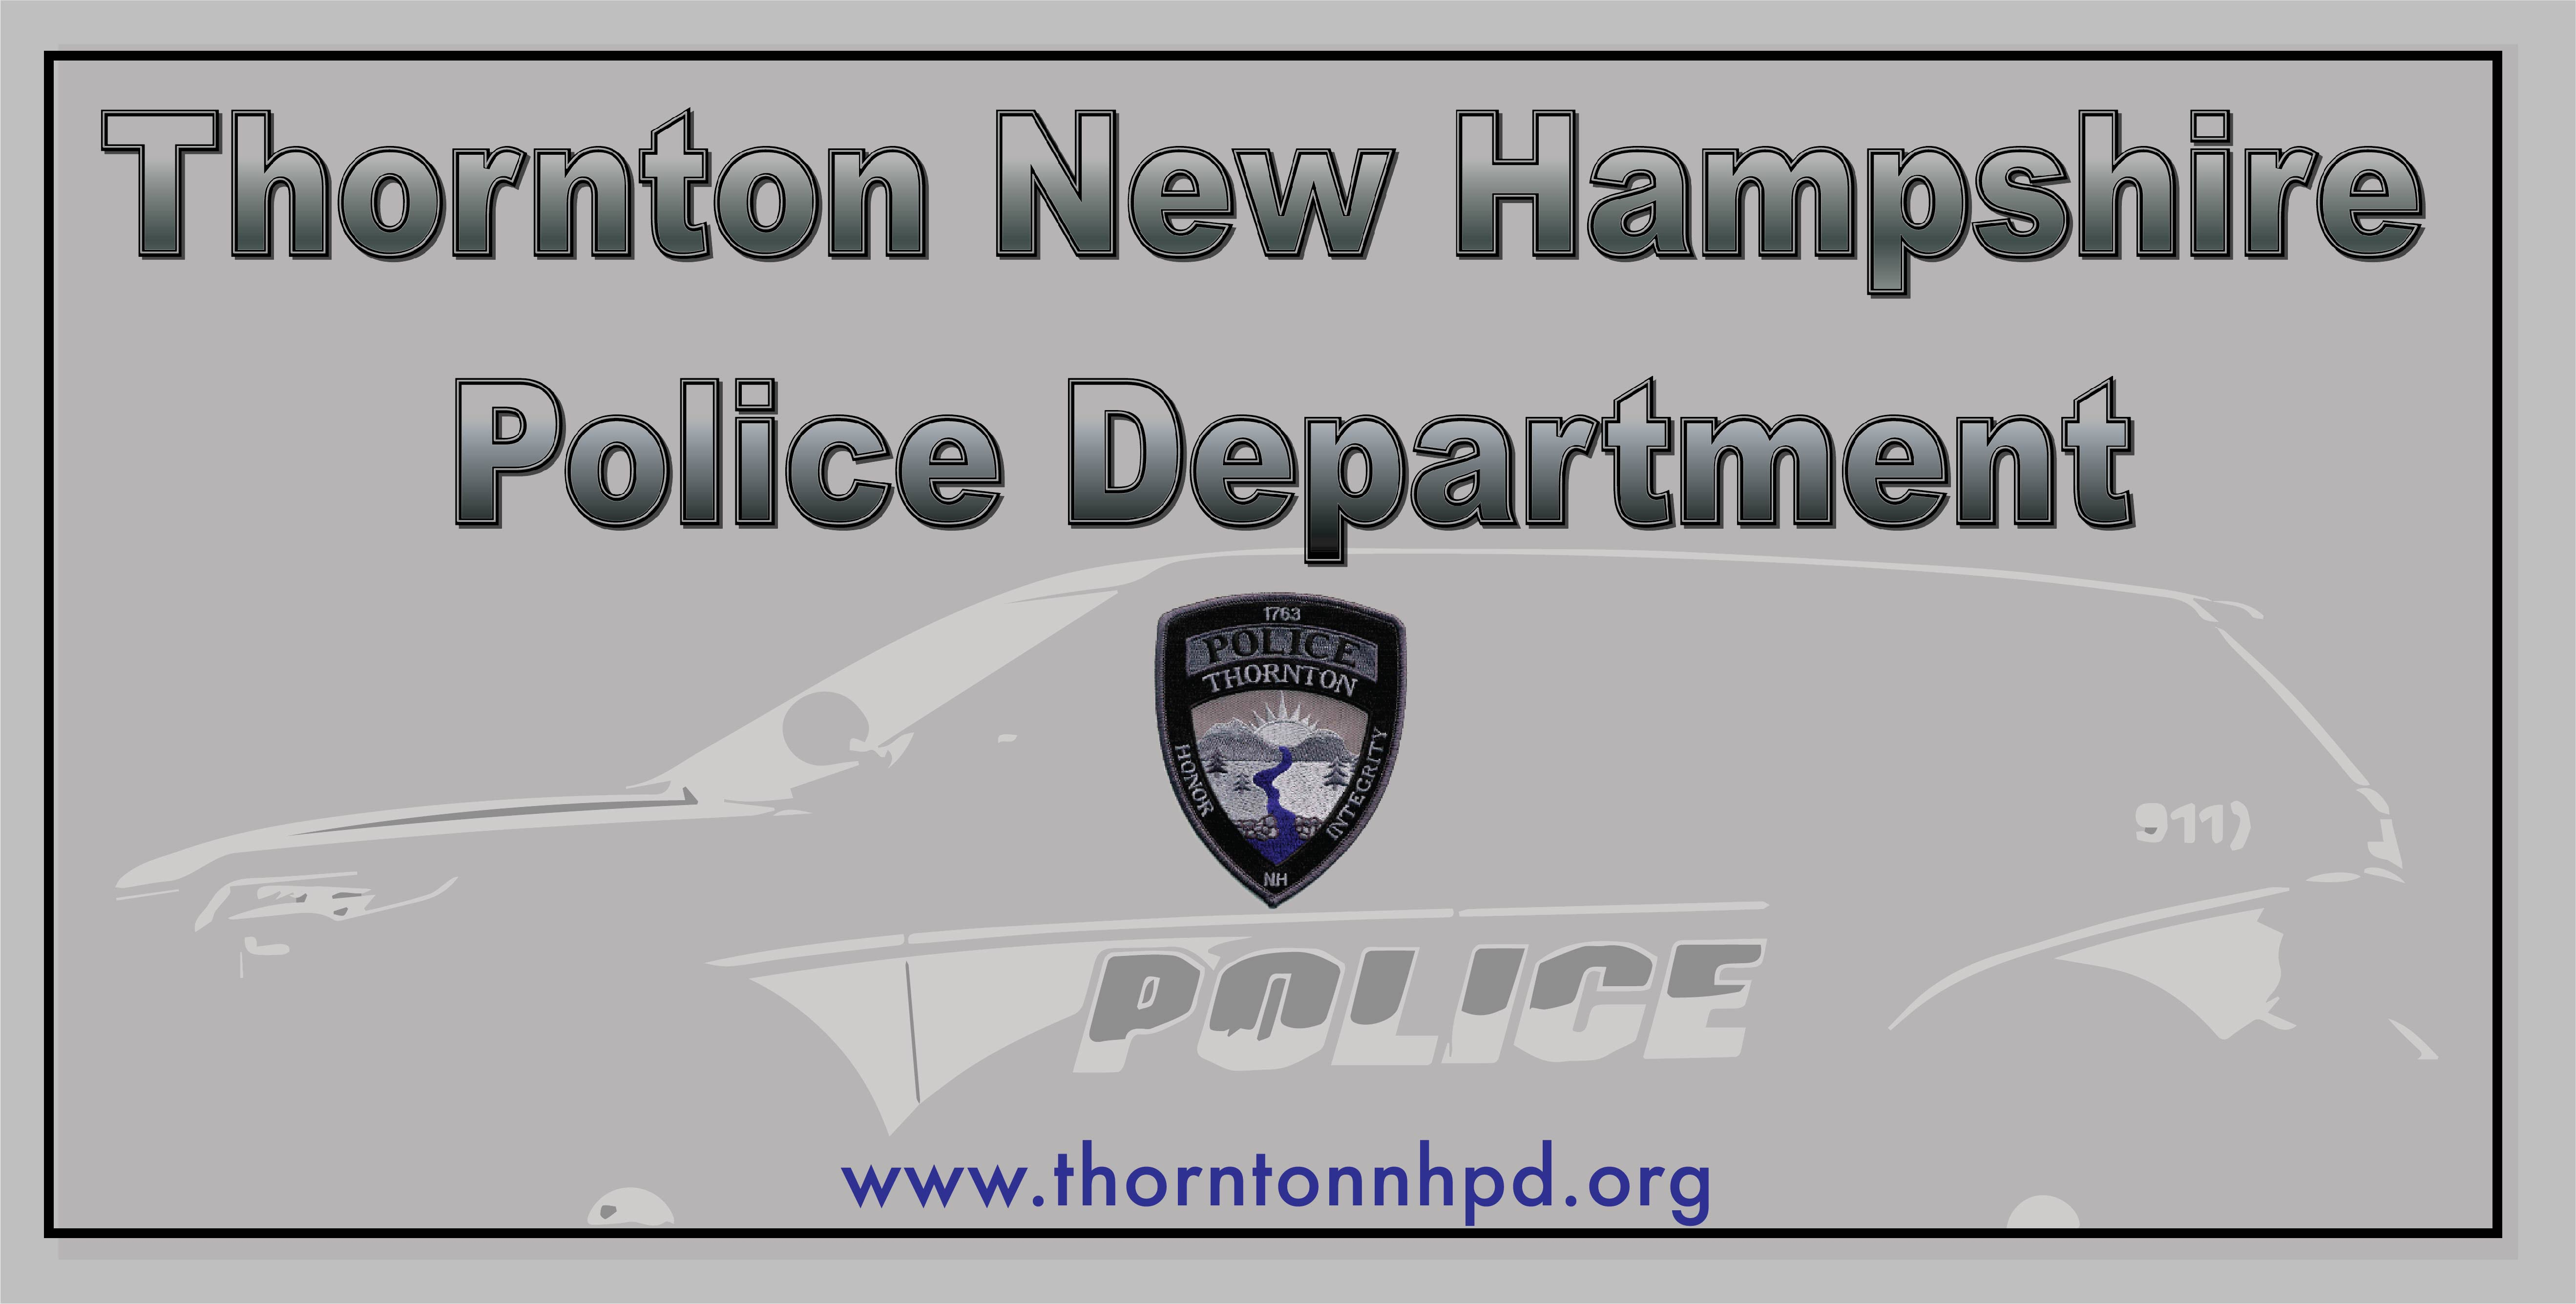 Thornton nh police jobs entry level certified policeapp for General motors criminal background check